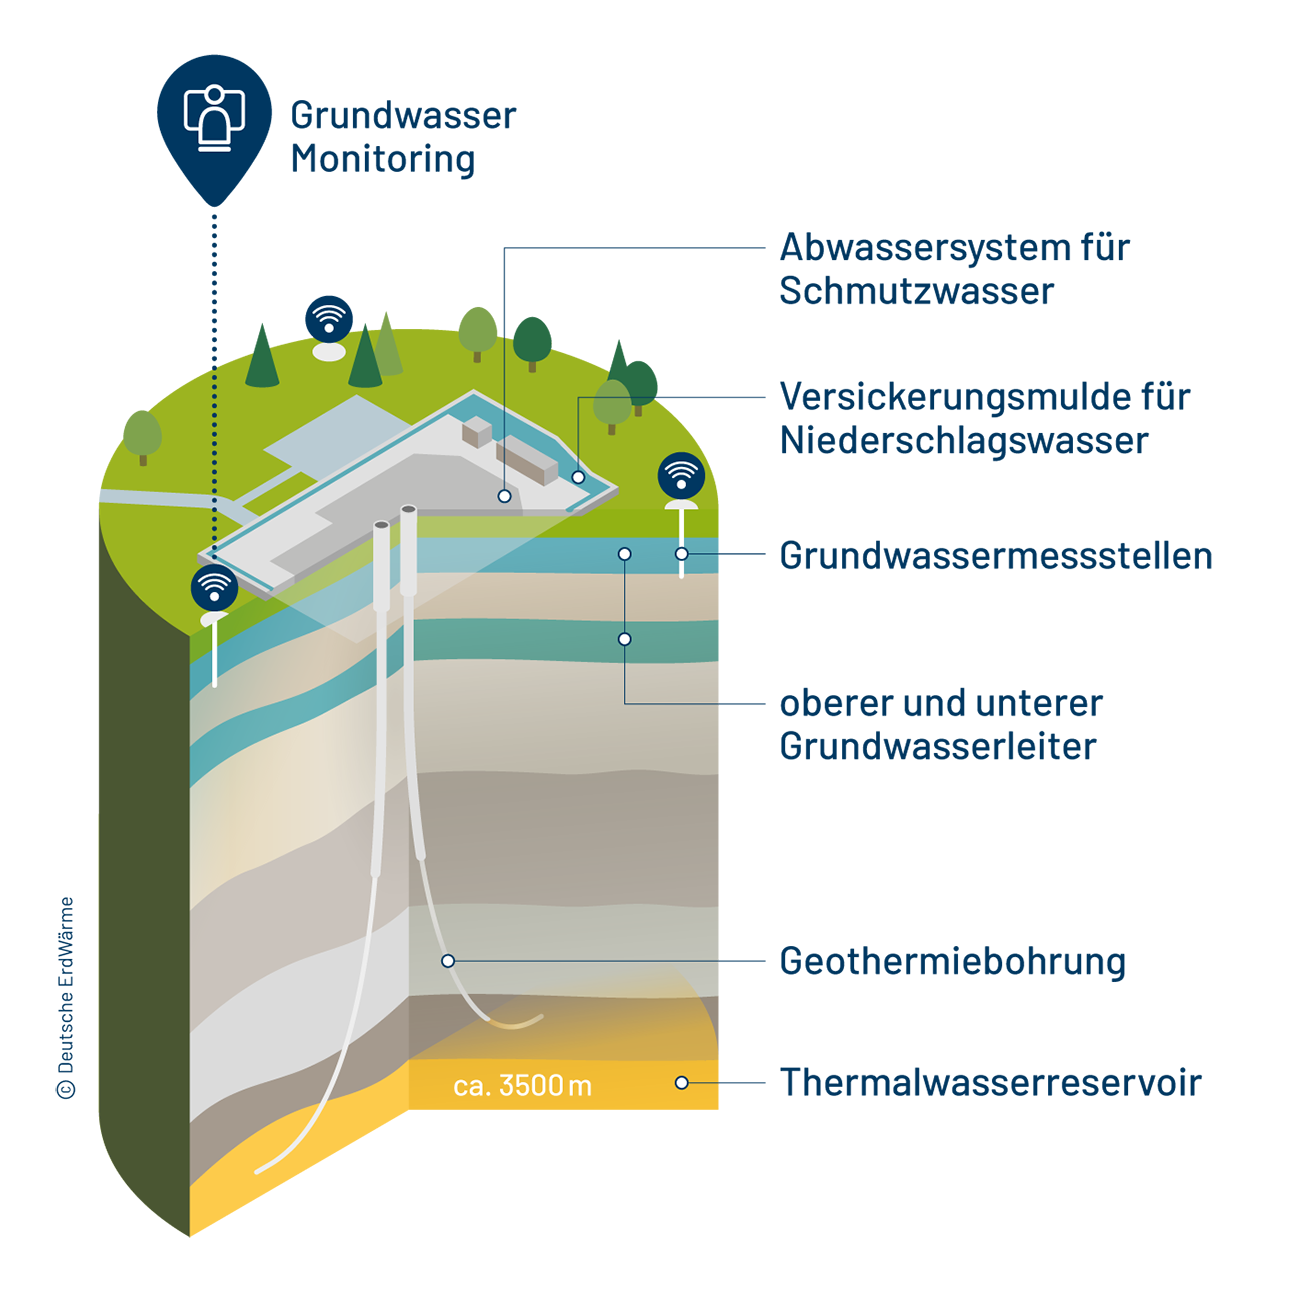 Illustration - Grundwasser-Monitoring